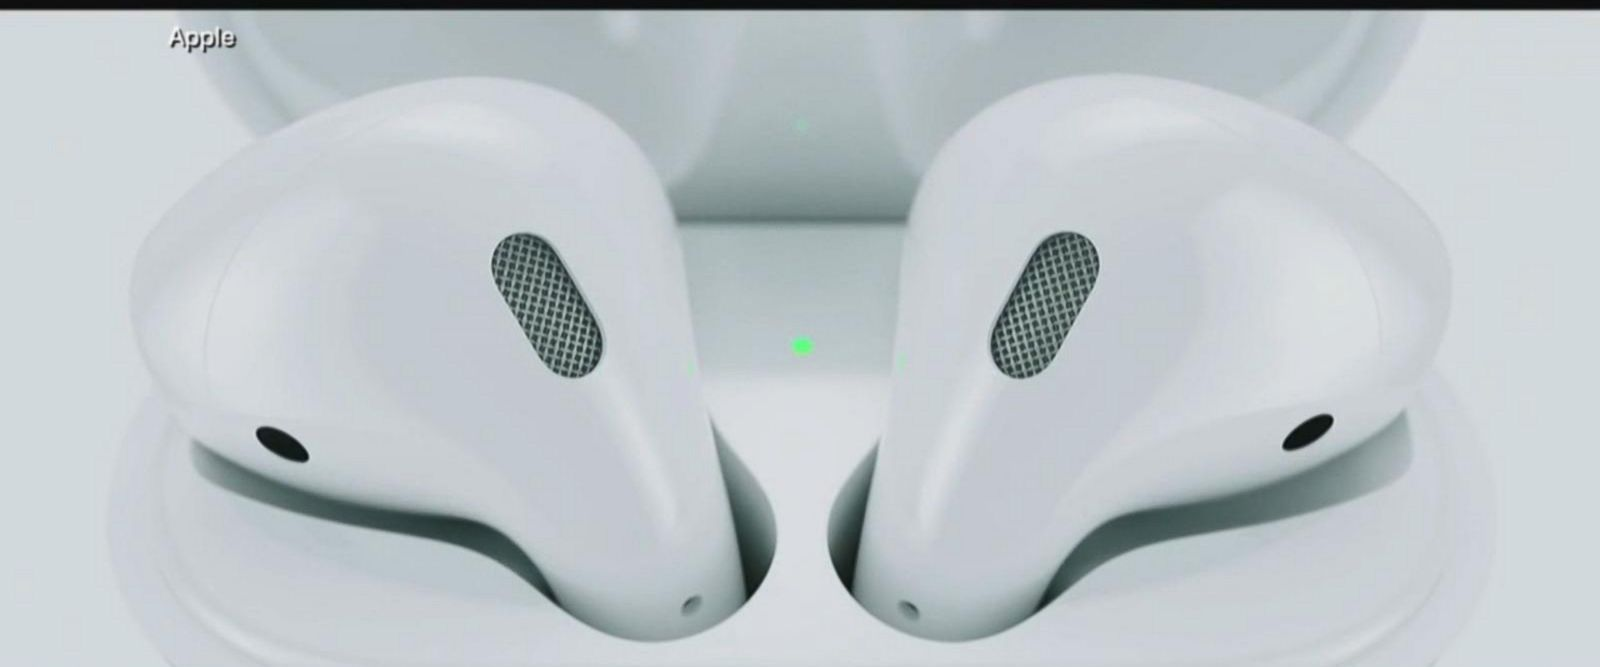 VIDEO: Apple reportedly will unveil second generation AirPods later this year